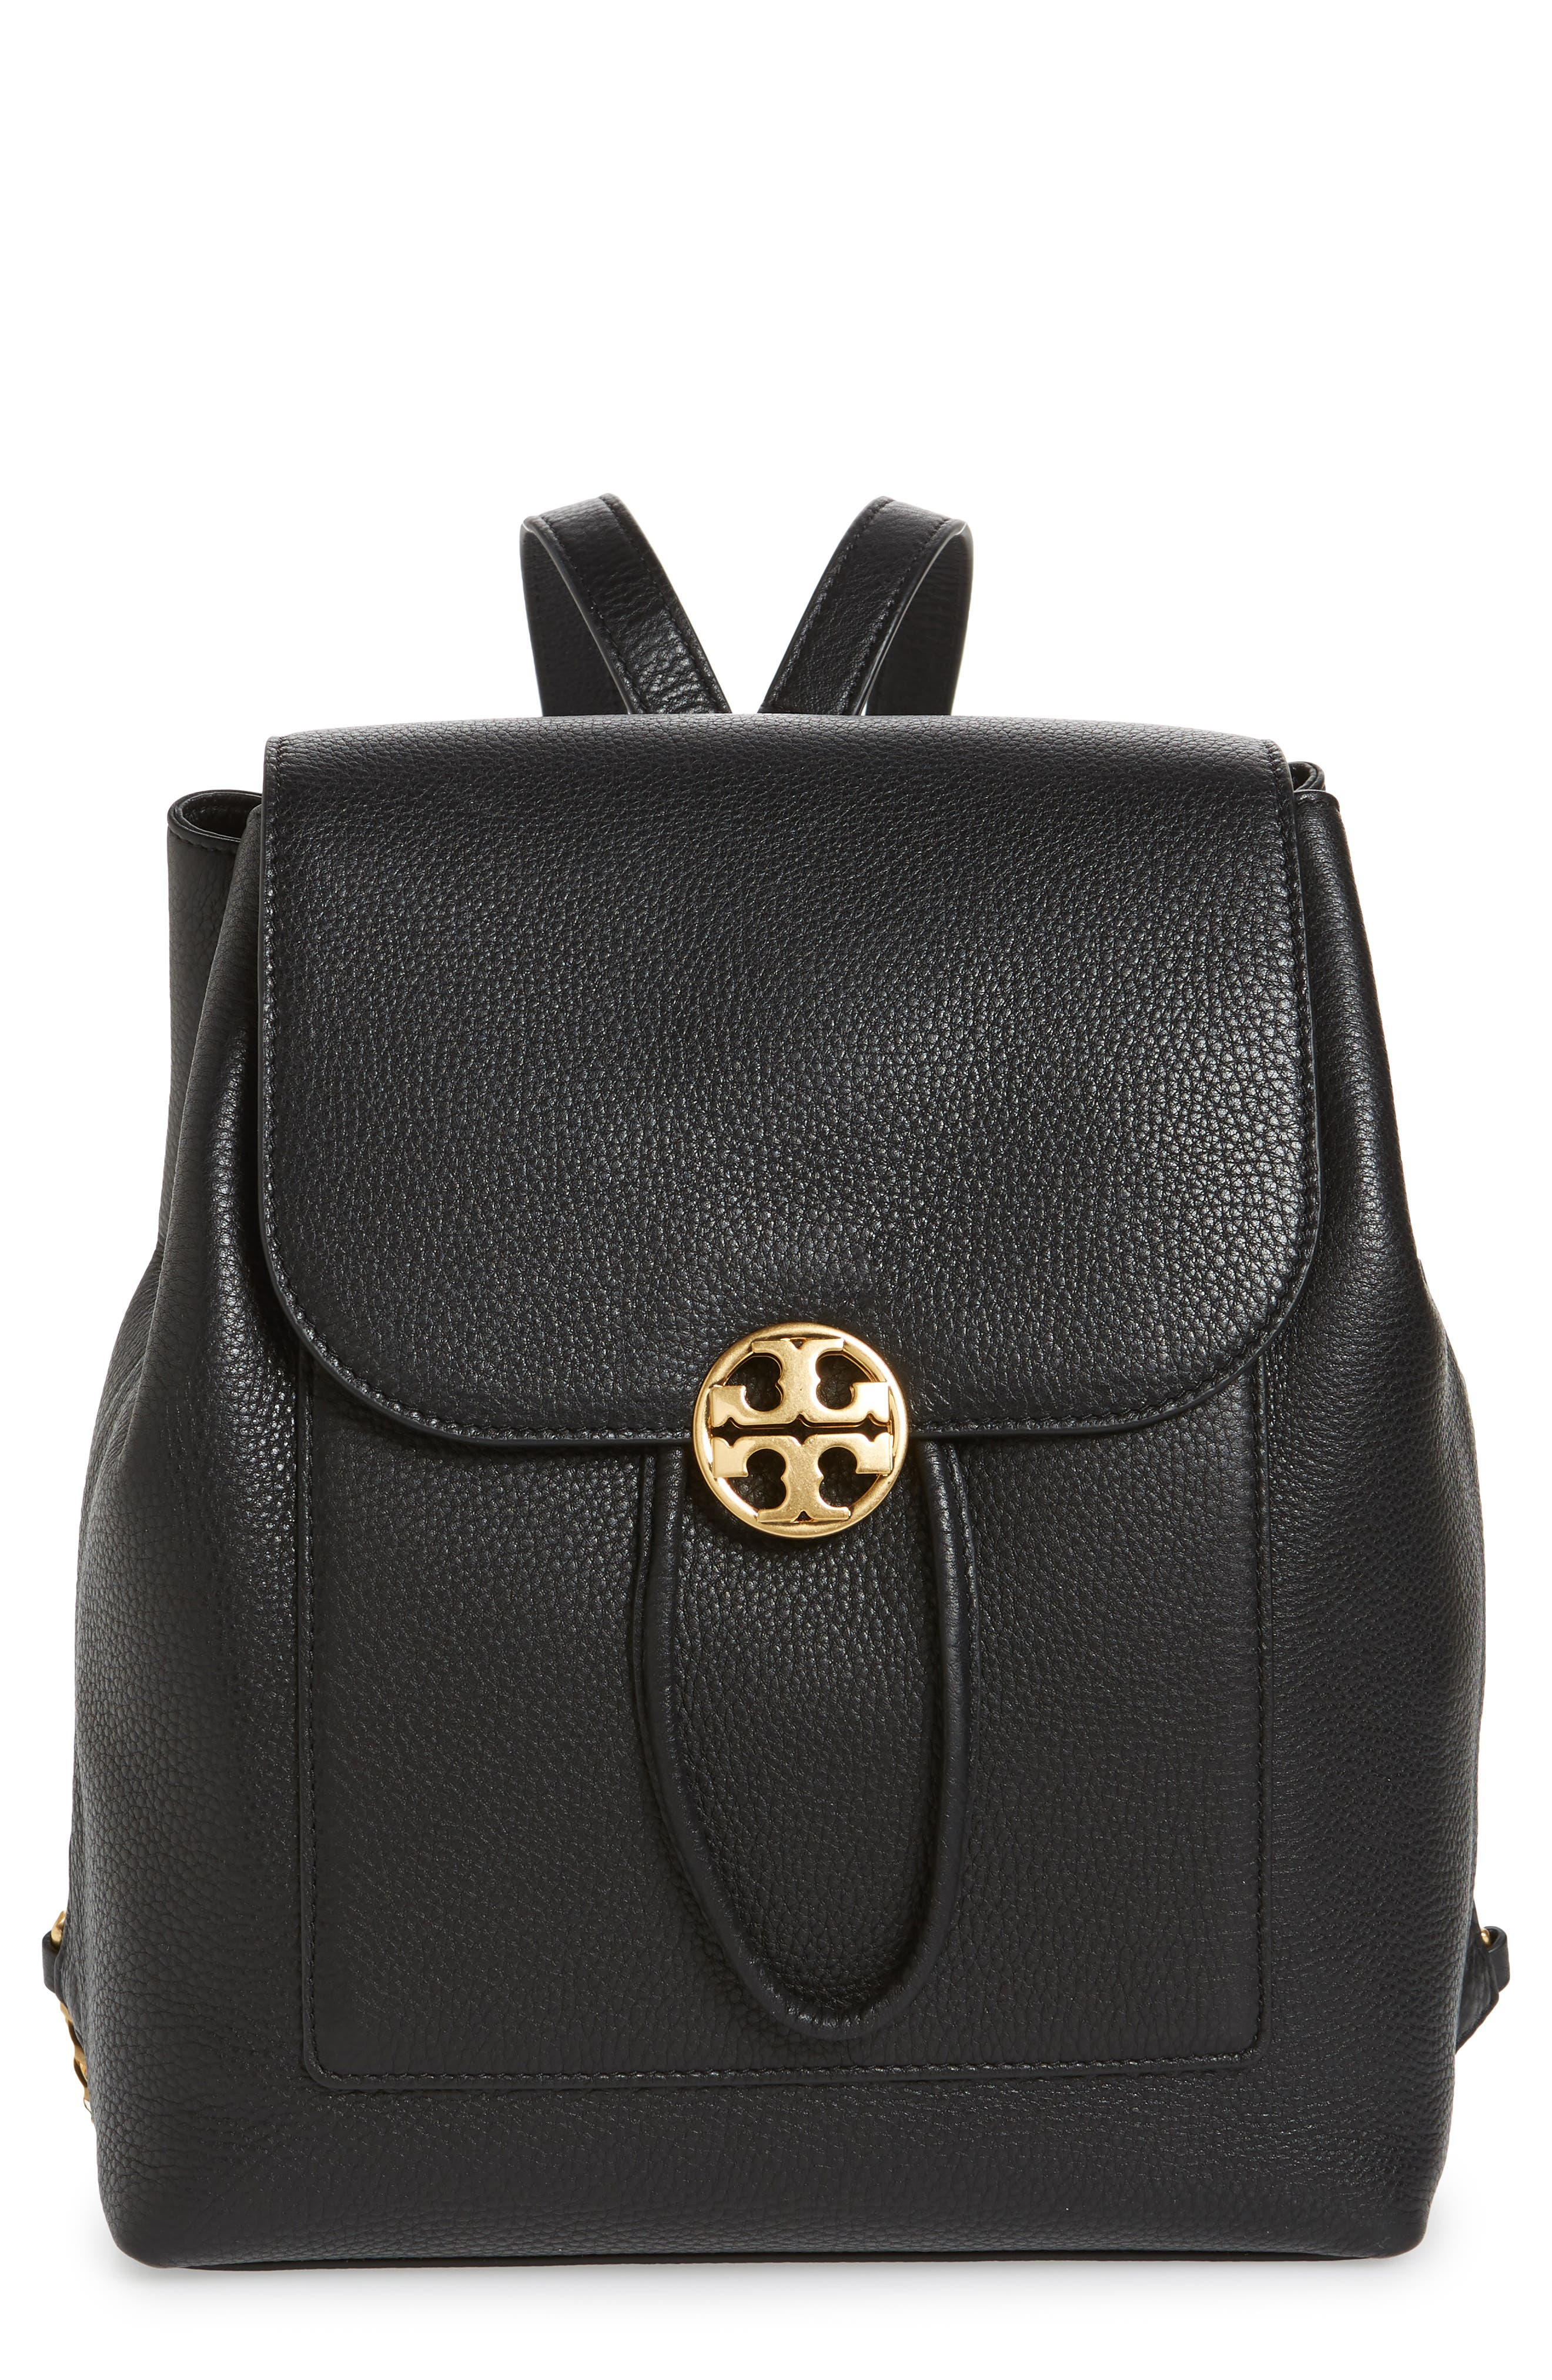 Chelsea Leather Backpack,                             Main thumbnail 1, color,                             001